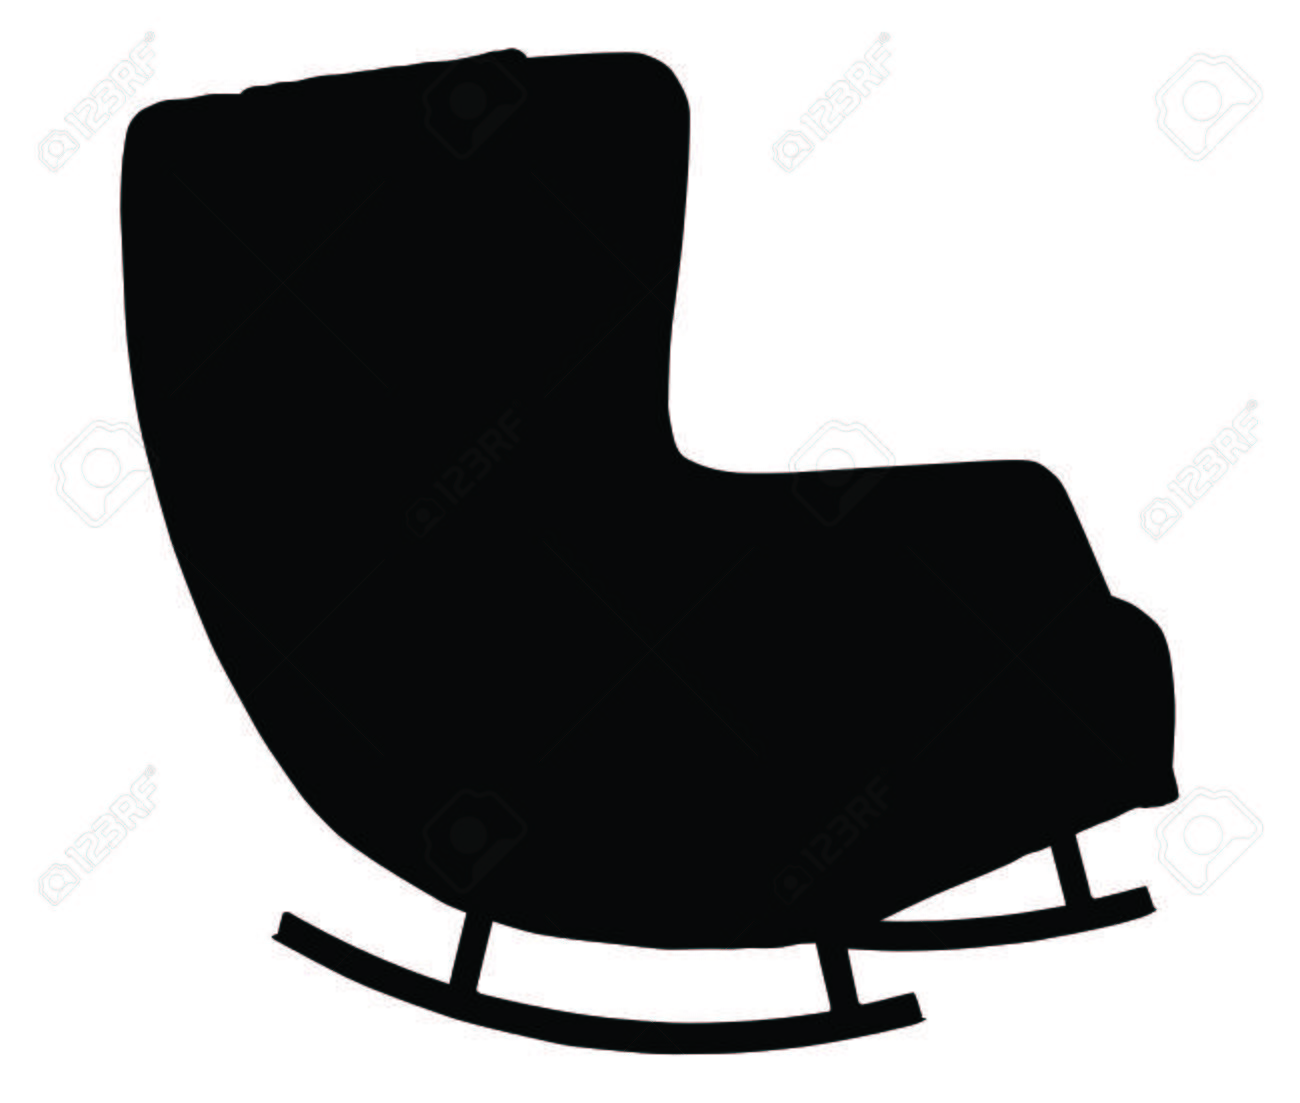 rocking chair silhouette. Silhouette Of Rocking Chair Isolated On White Background Stock Vector - 56731626